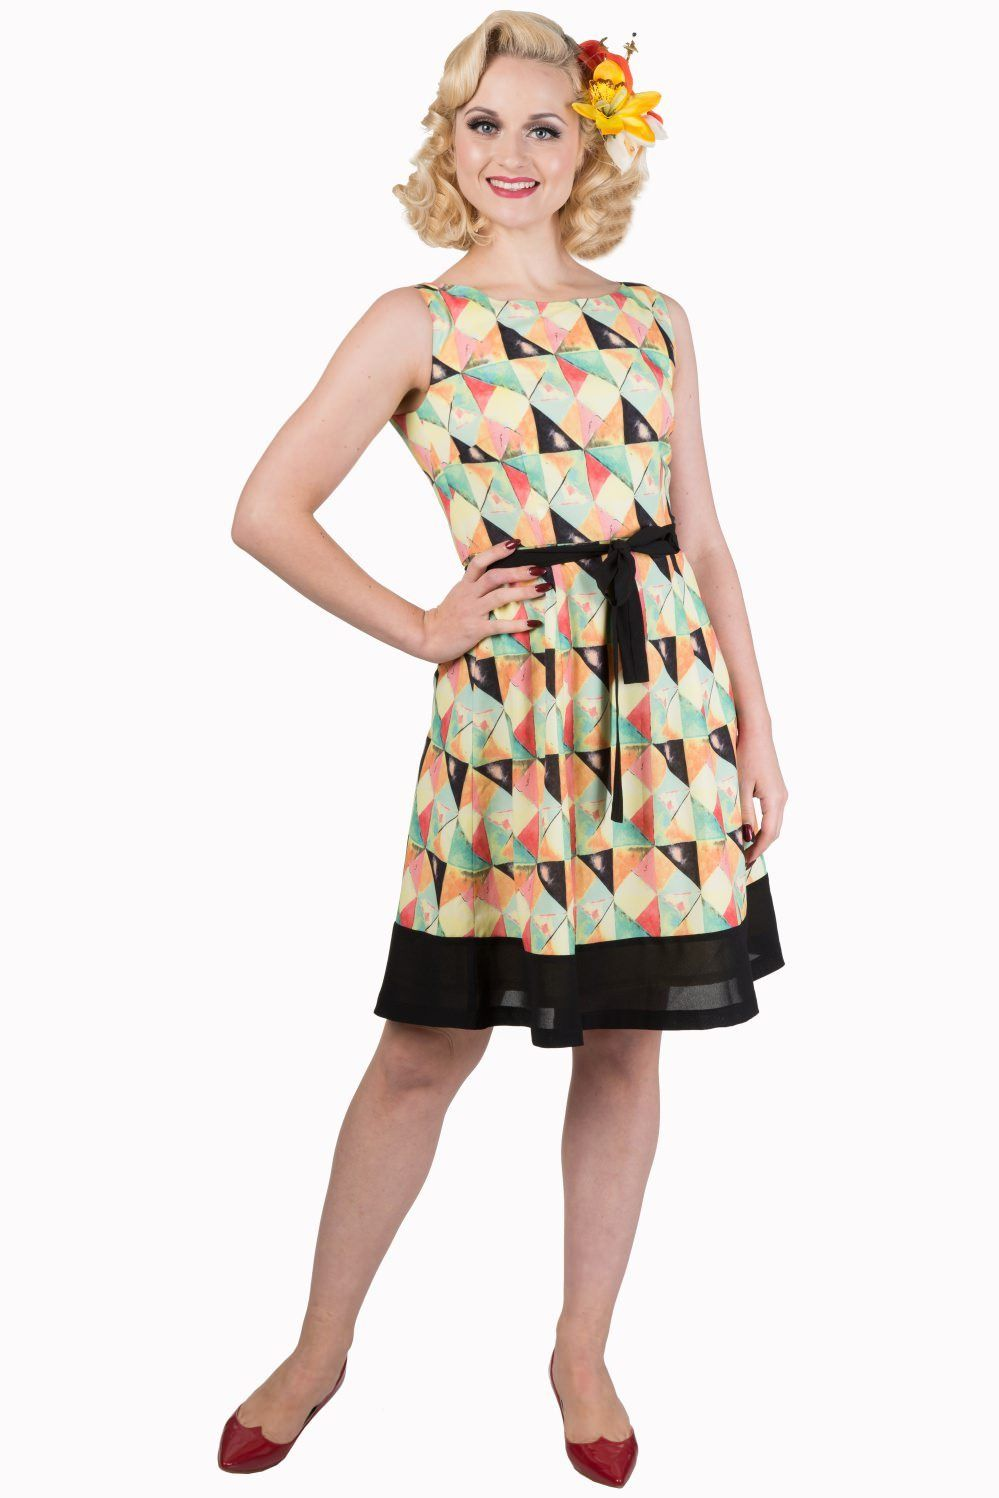 Stardust Retro Dress Banned - Rockamilly-Dress-Vintage